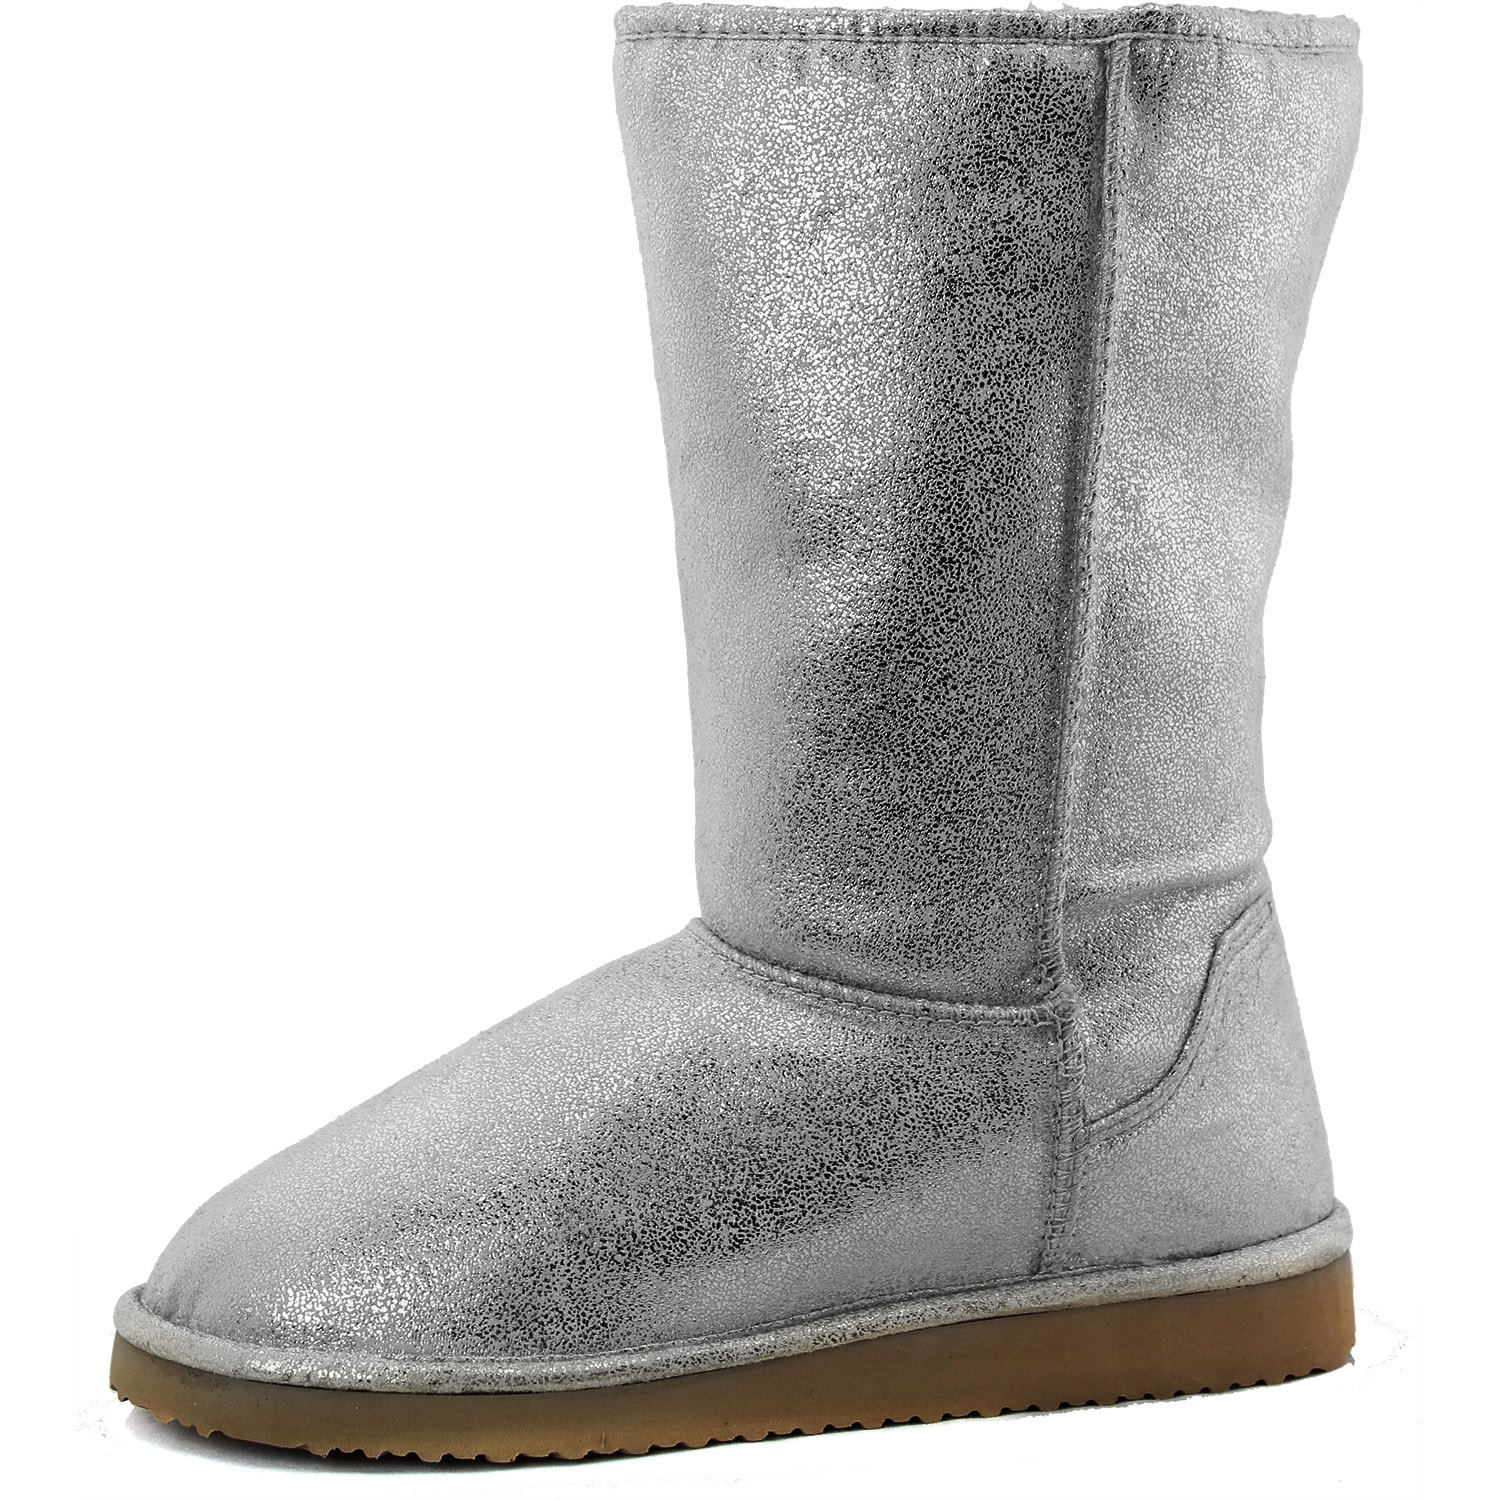 Metallic Silver Shinny Low Mid Calf Boots Light Weight